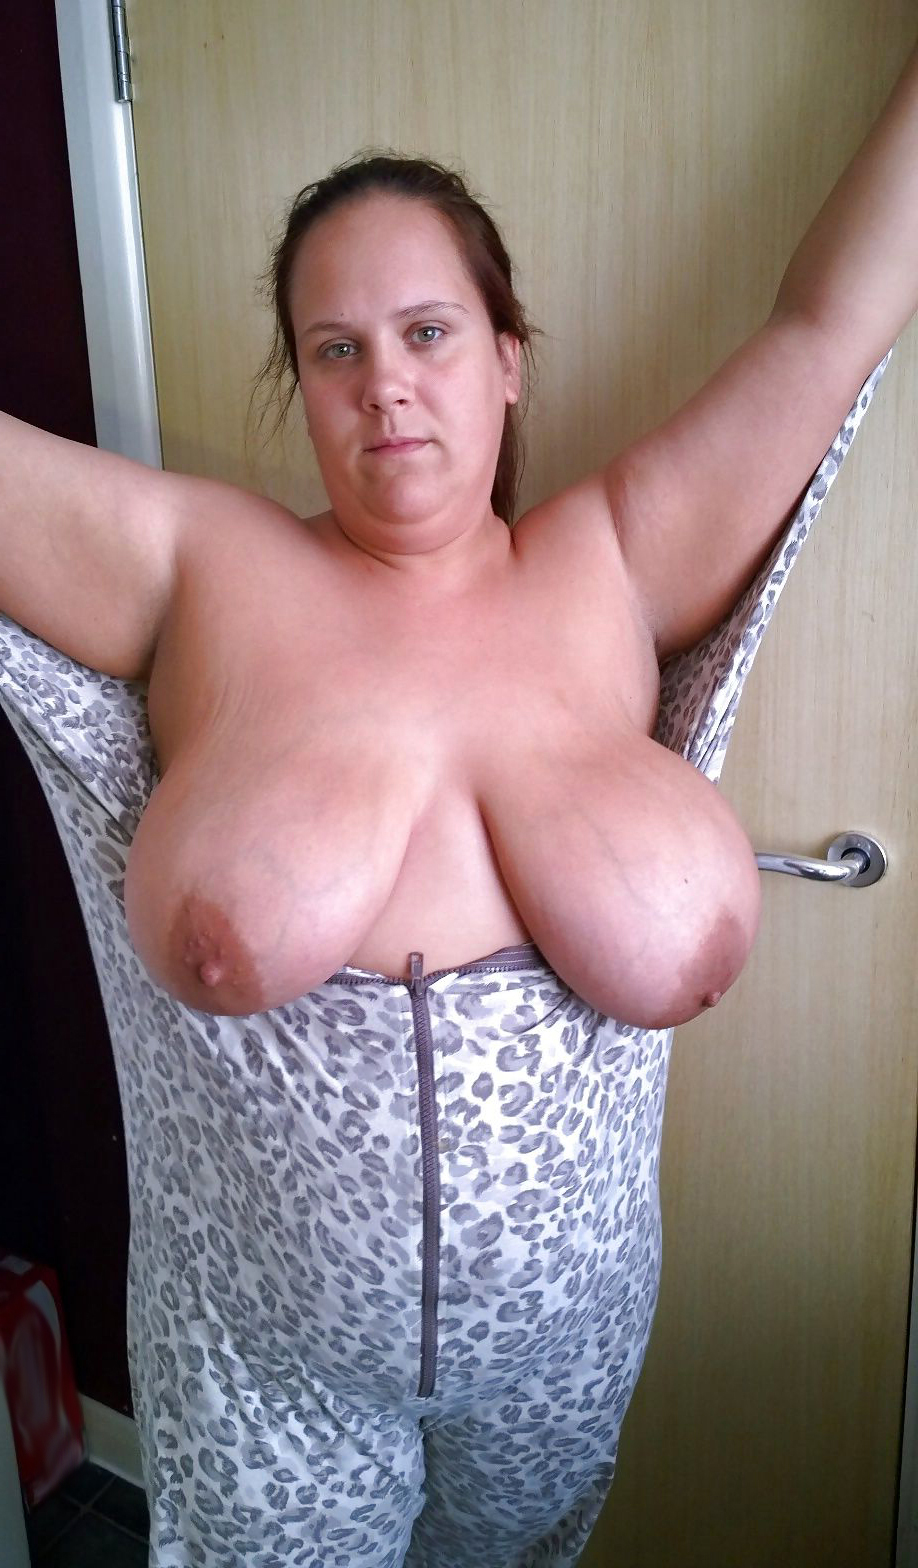 Bbw of the day